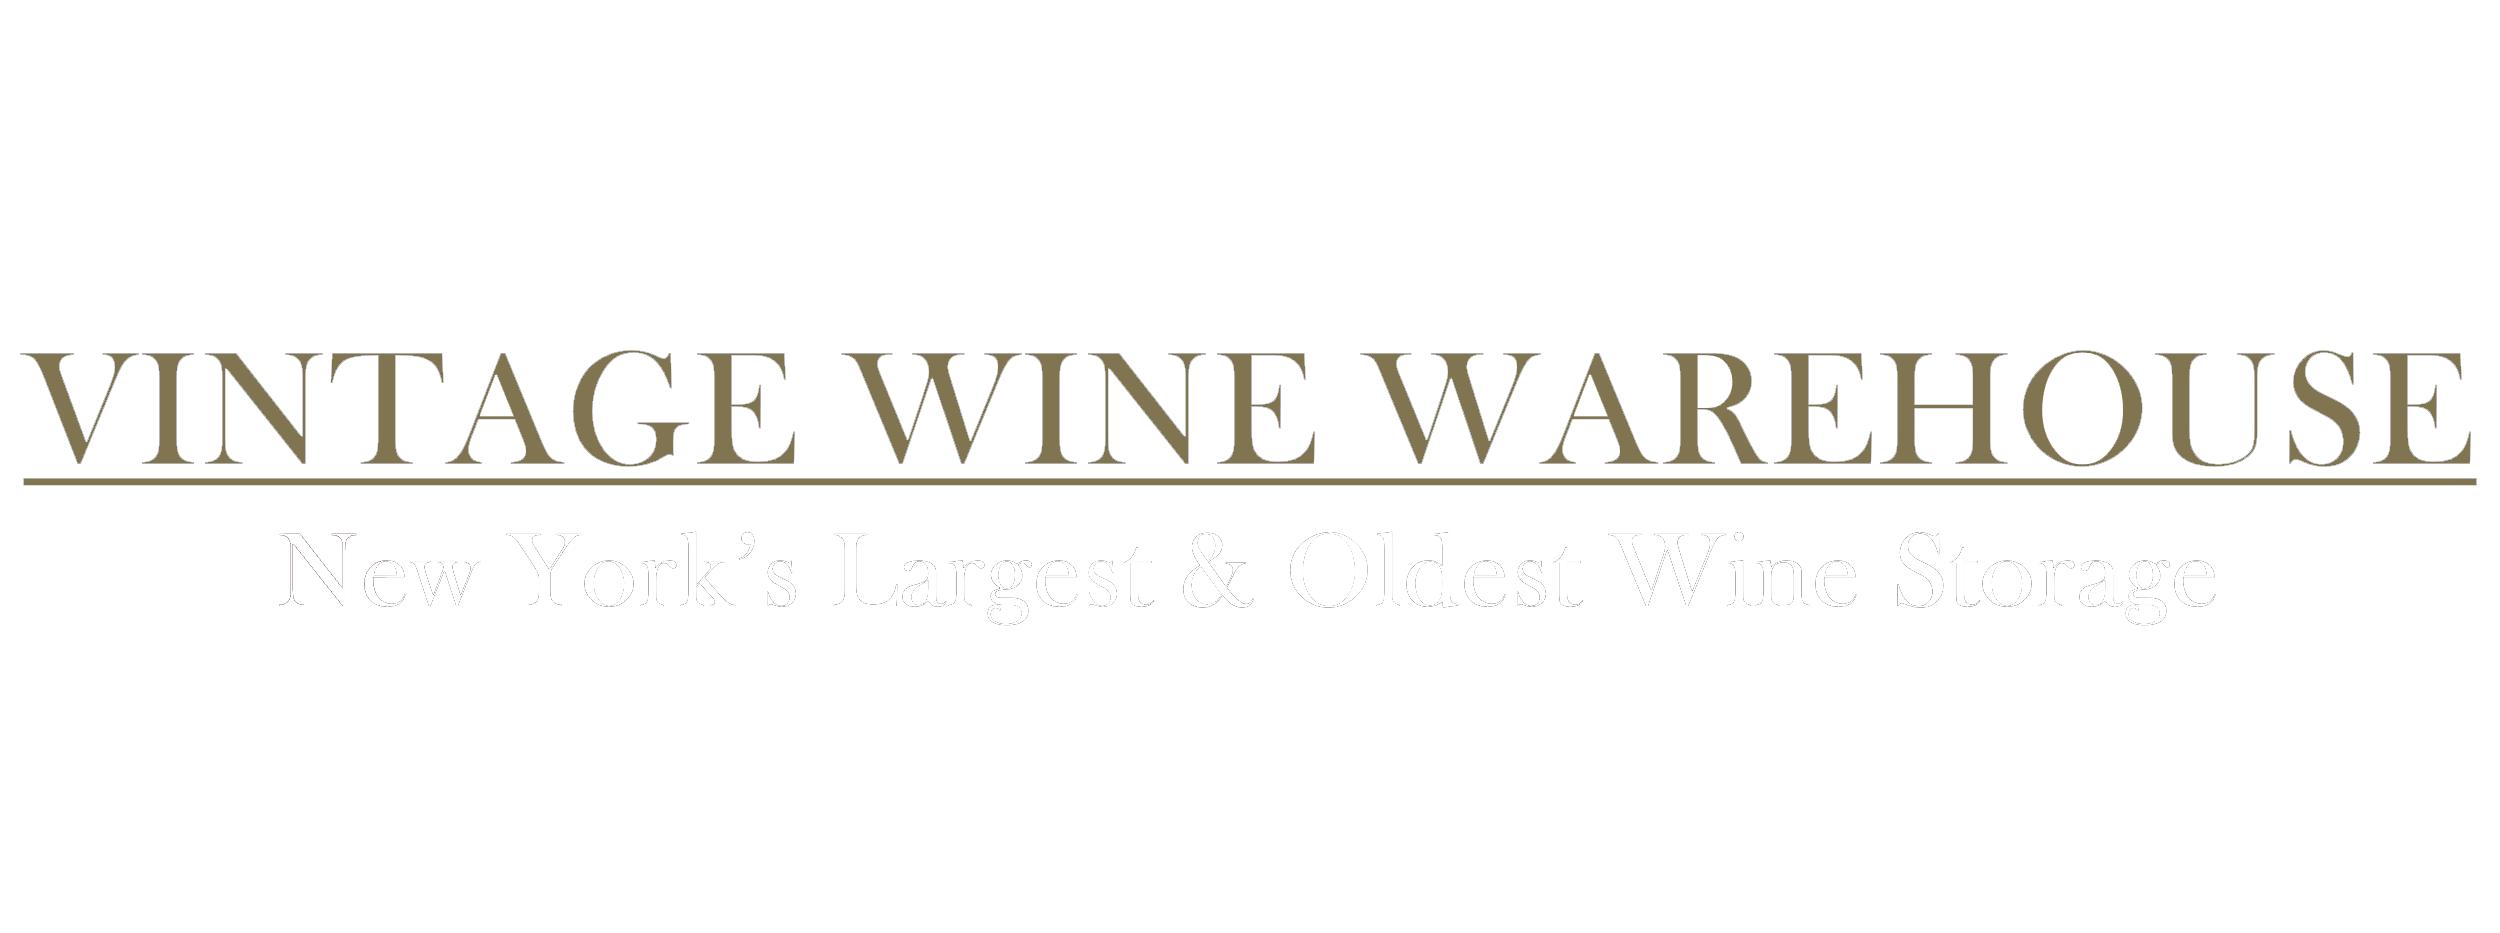 Vintage Wine Warehouse Test (6).png